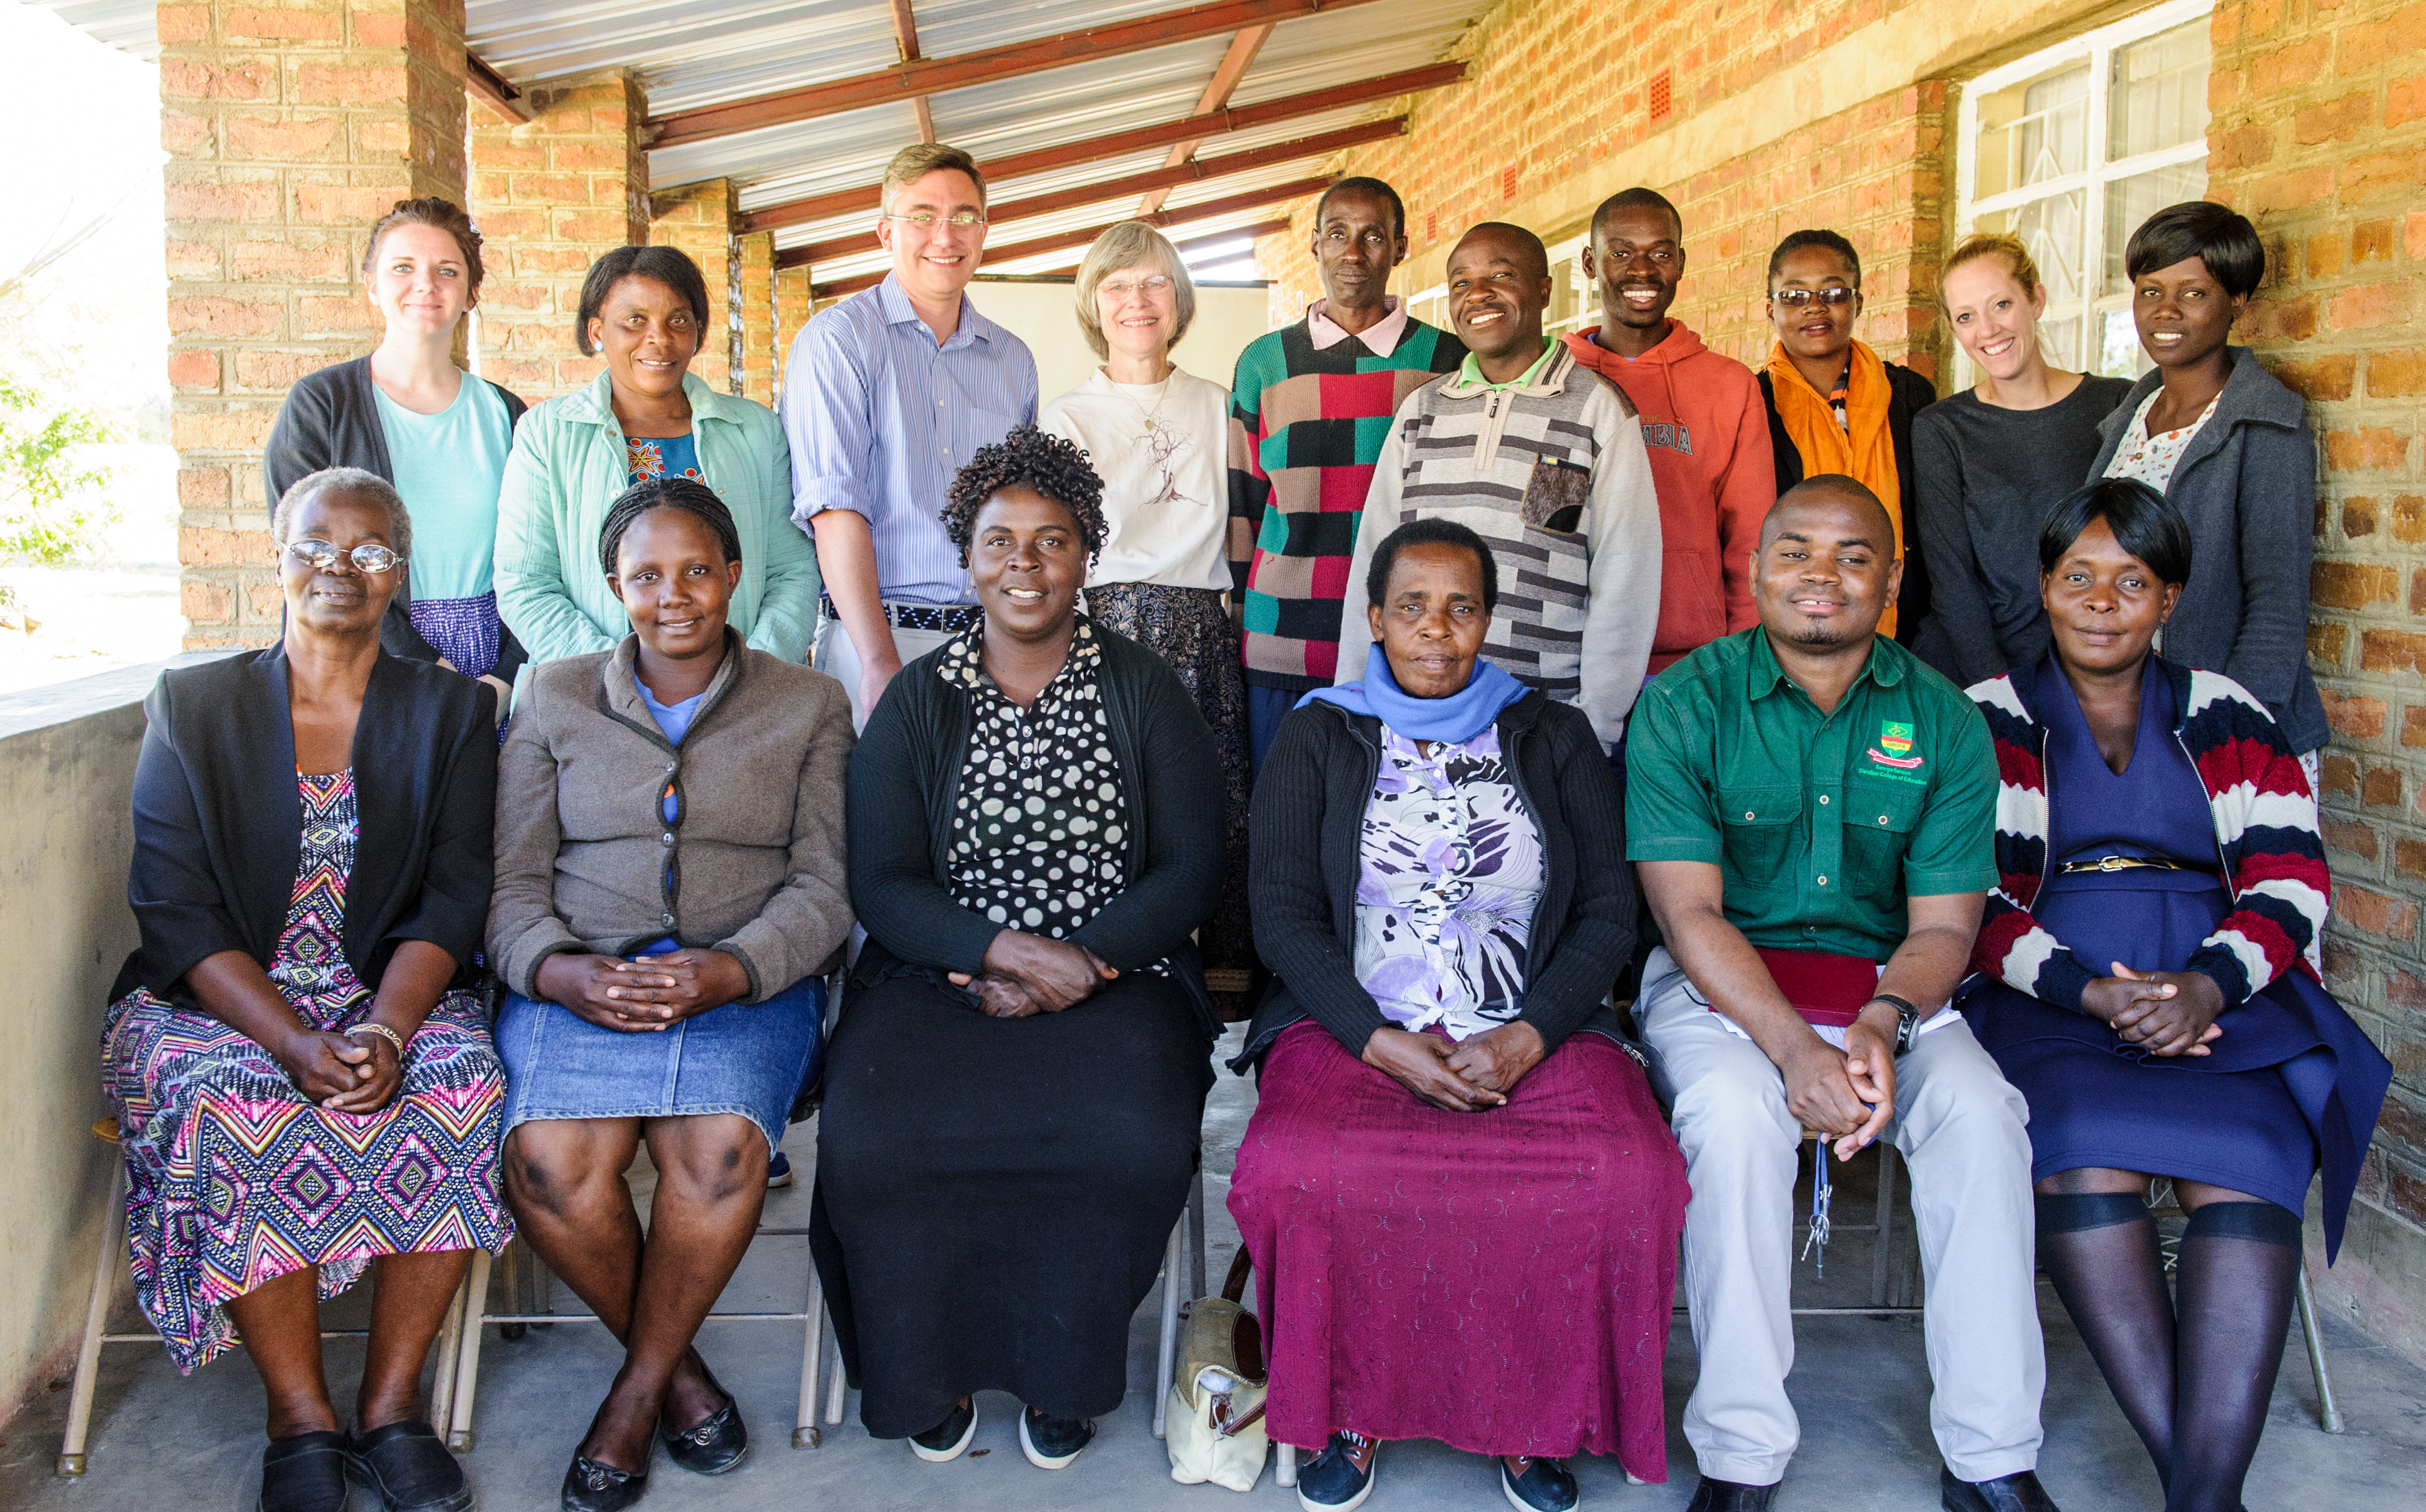 Dr. Reichow and Dr. Marylou Behnke pose with Zambian community members